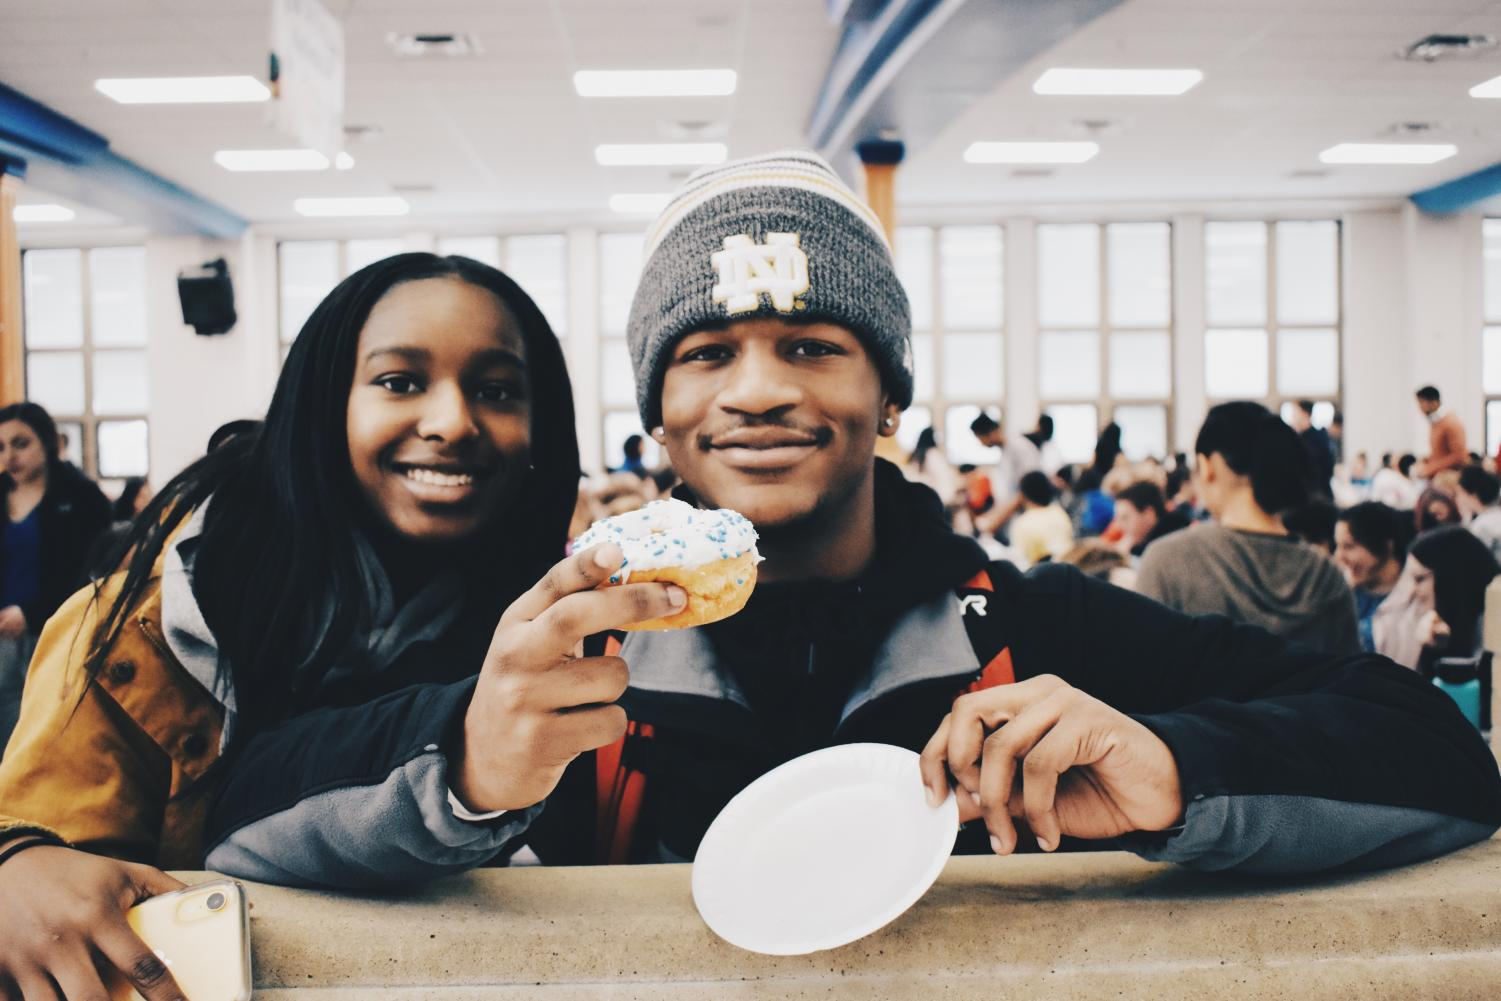 Juniors Kyah Walker and Jaylen Wright enjoy a donut at the honor roll breakfast.